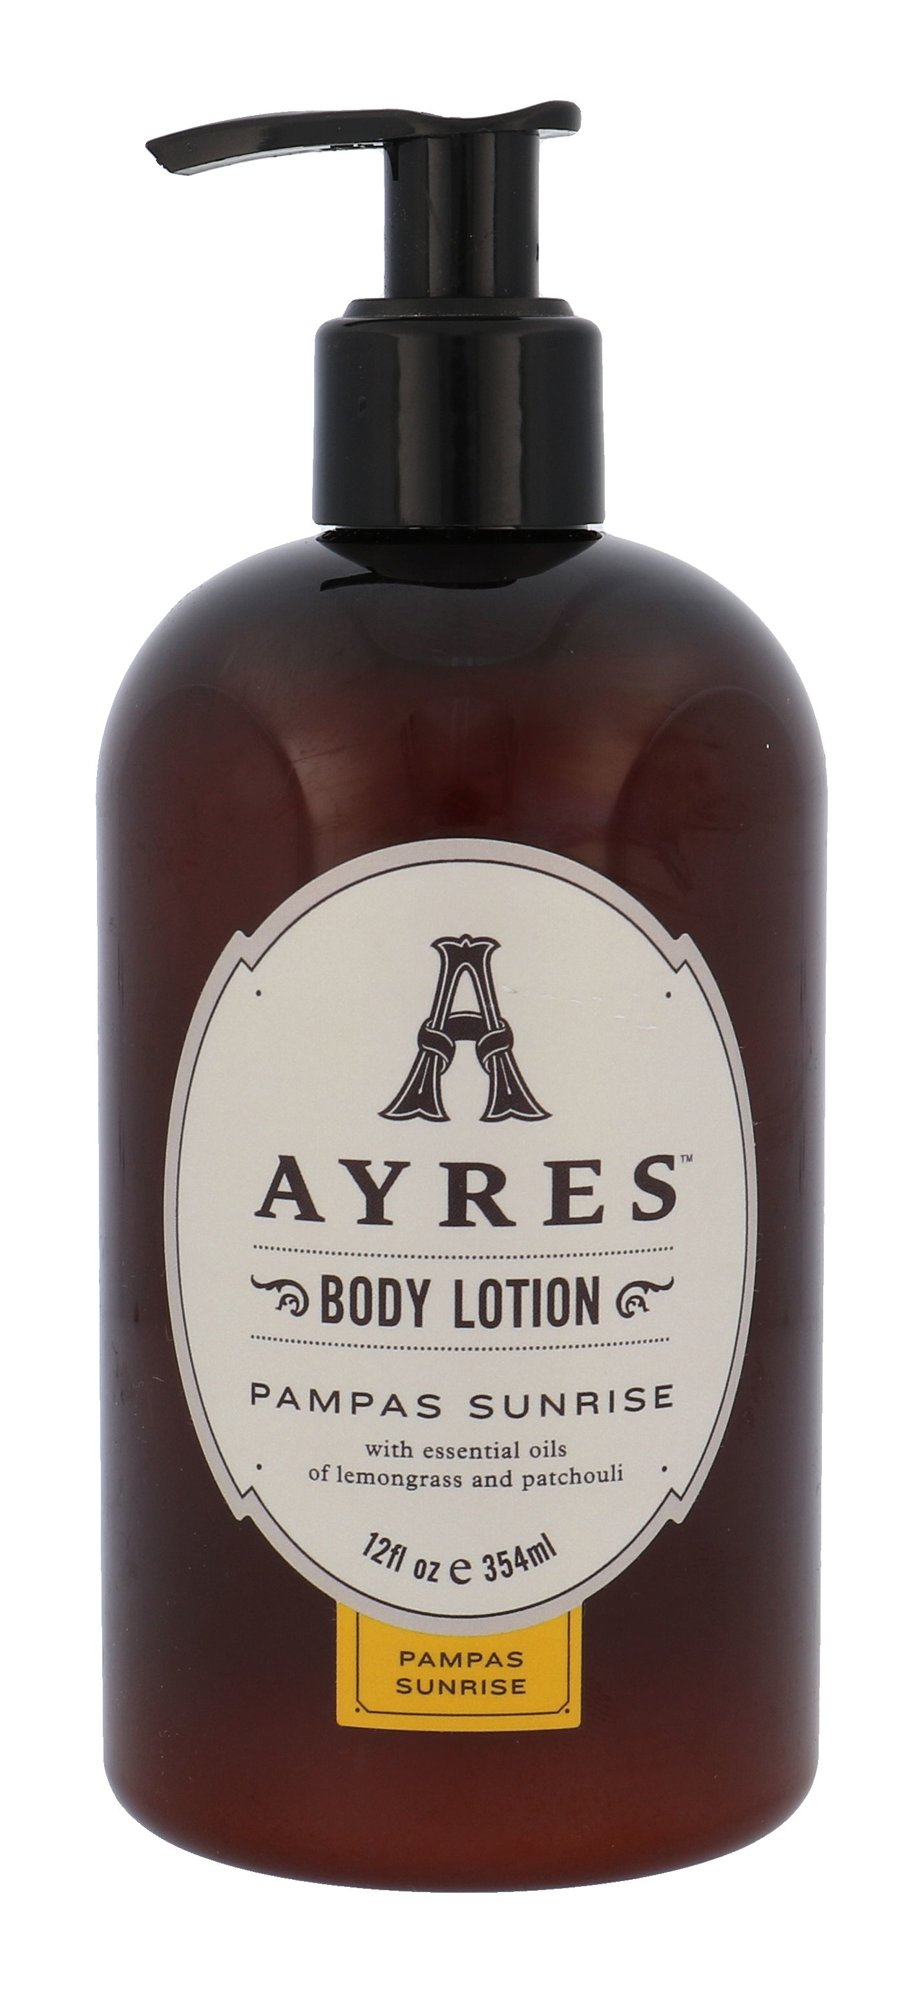 Ayres Pampas Sunrise Body Lotion Cosmetic 354ml